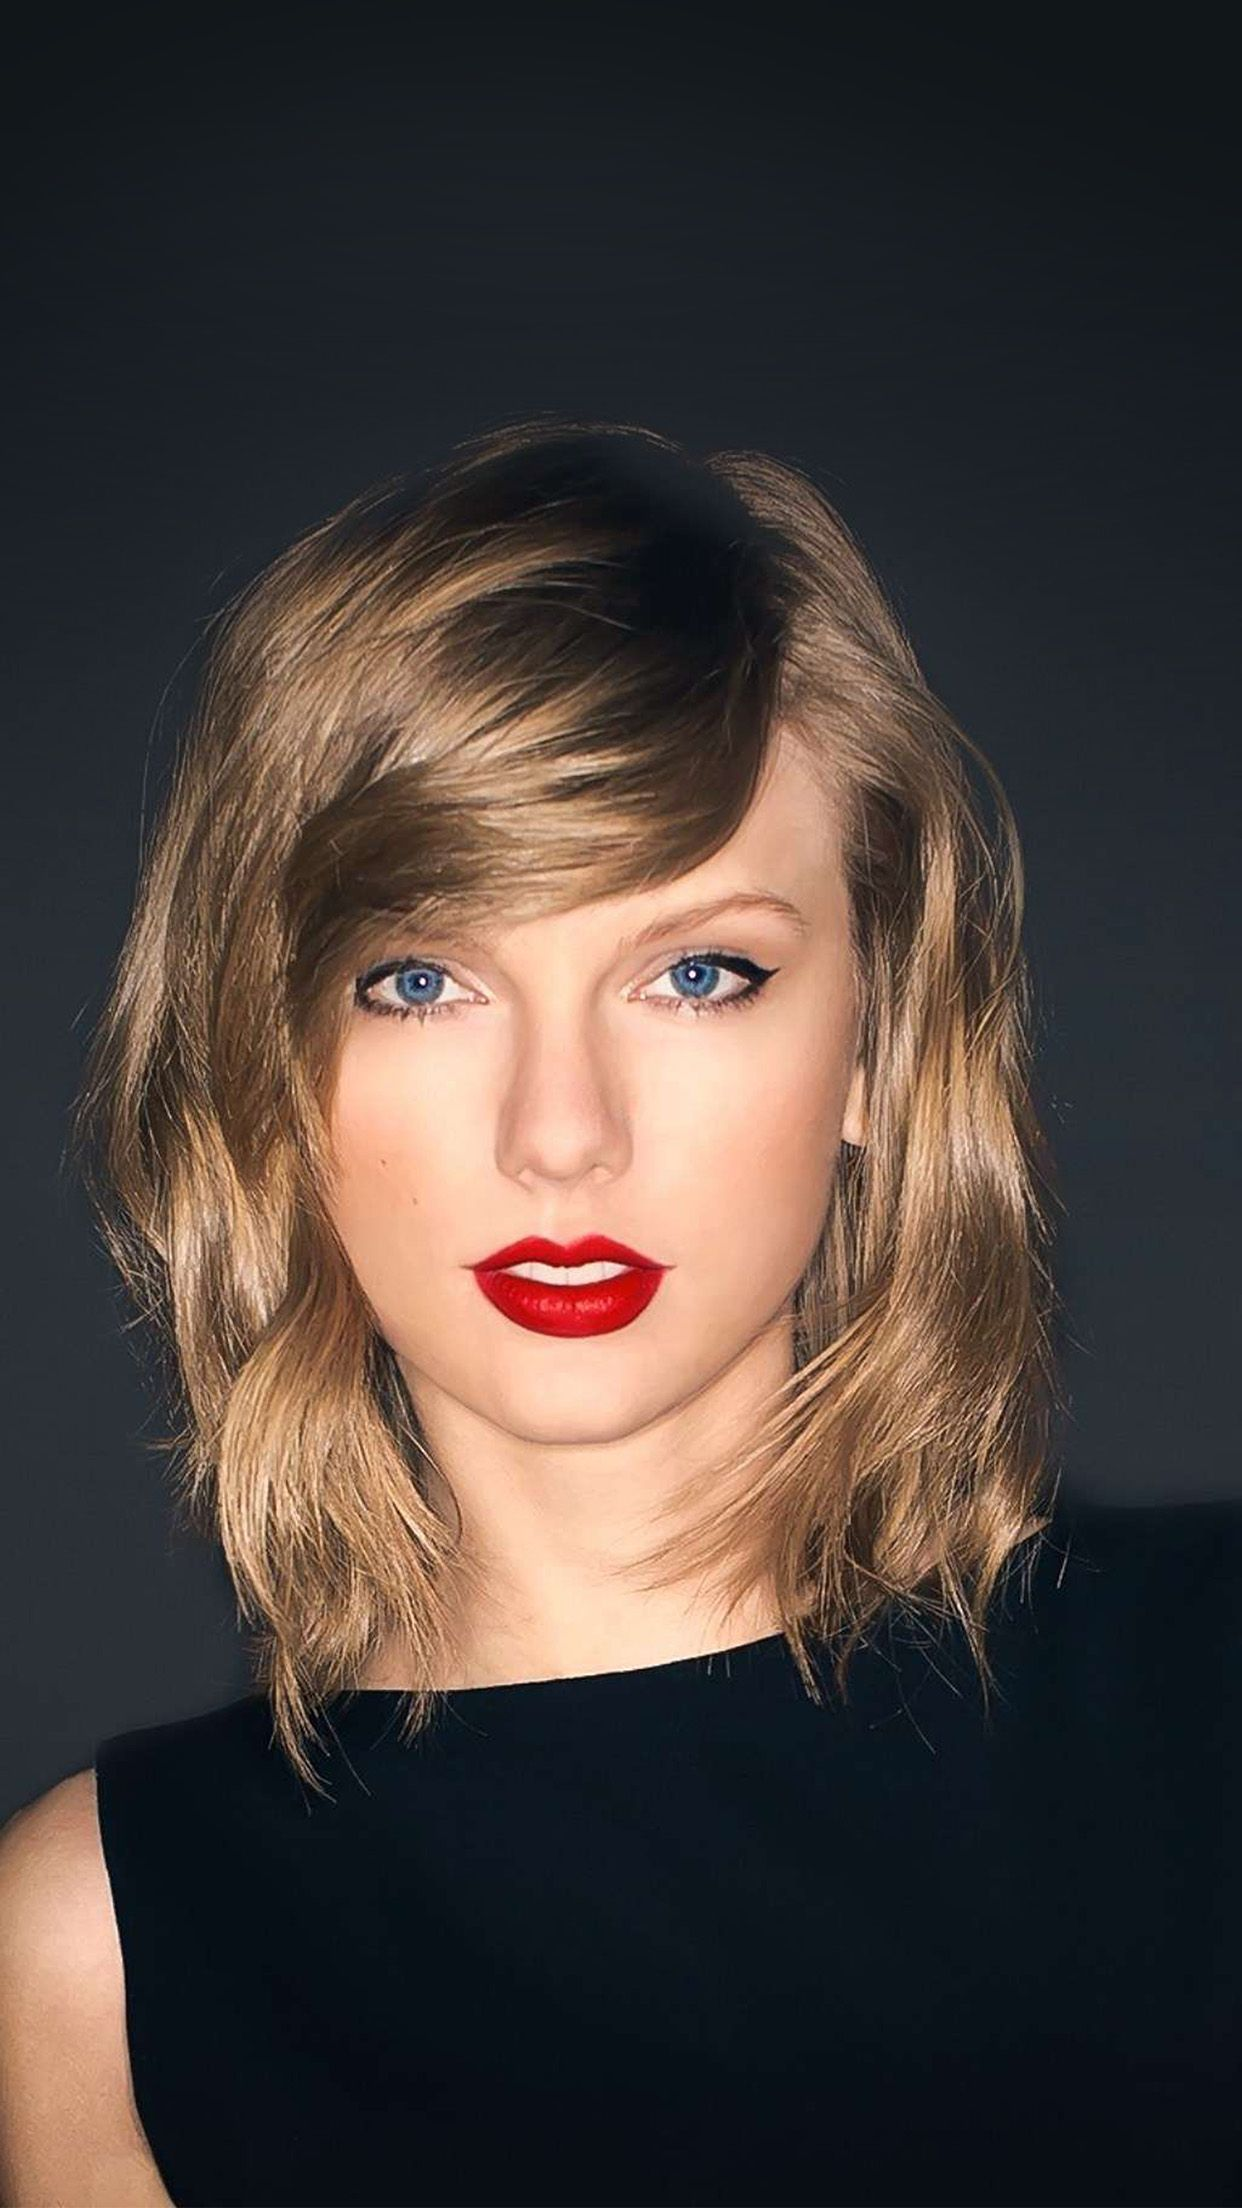 Taylor Swift HD Android Wallpapers - Wallpaper Cave